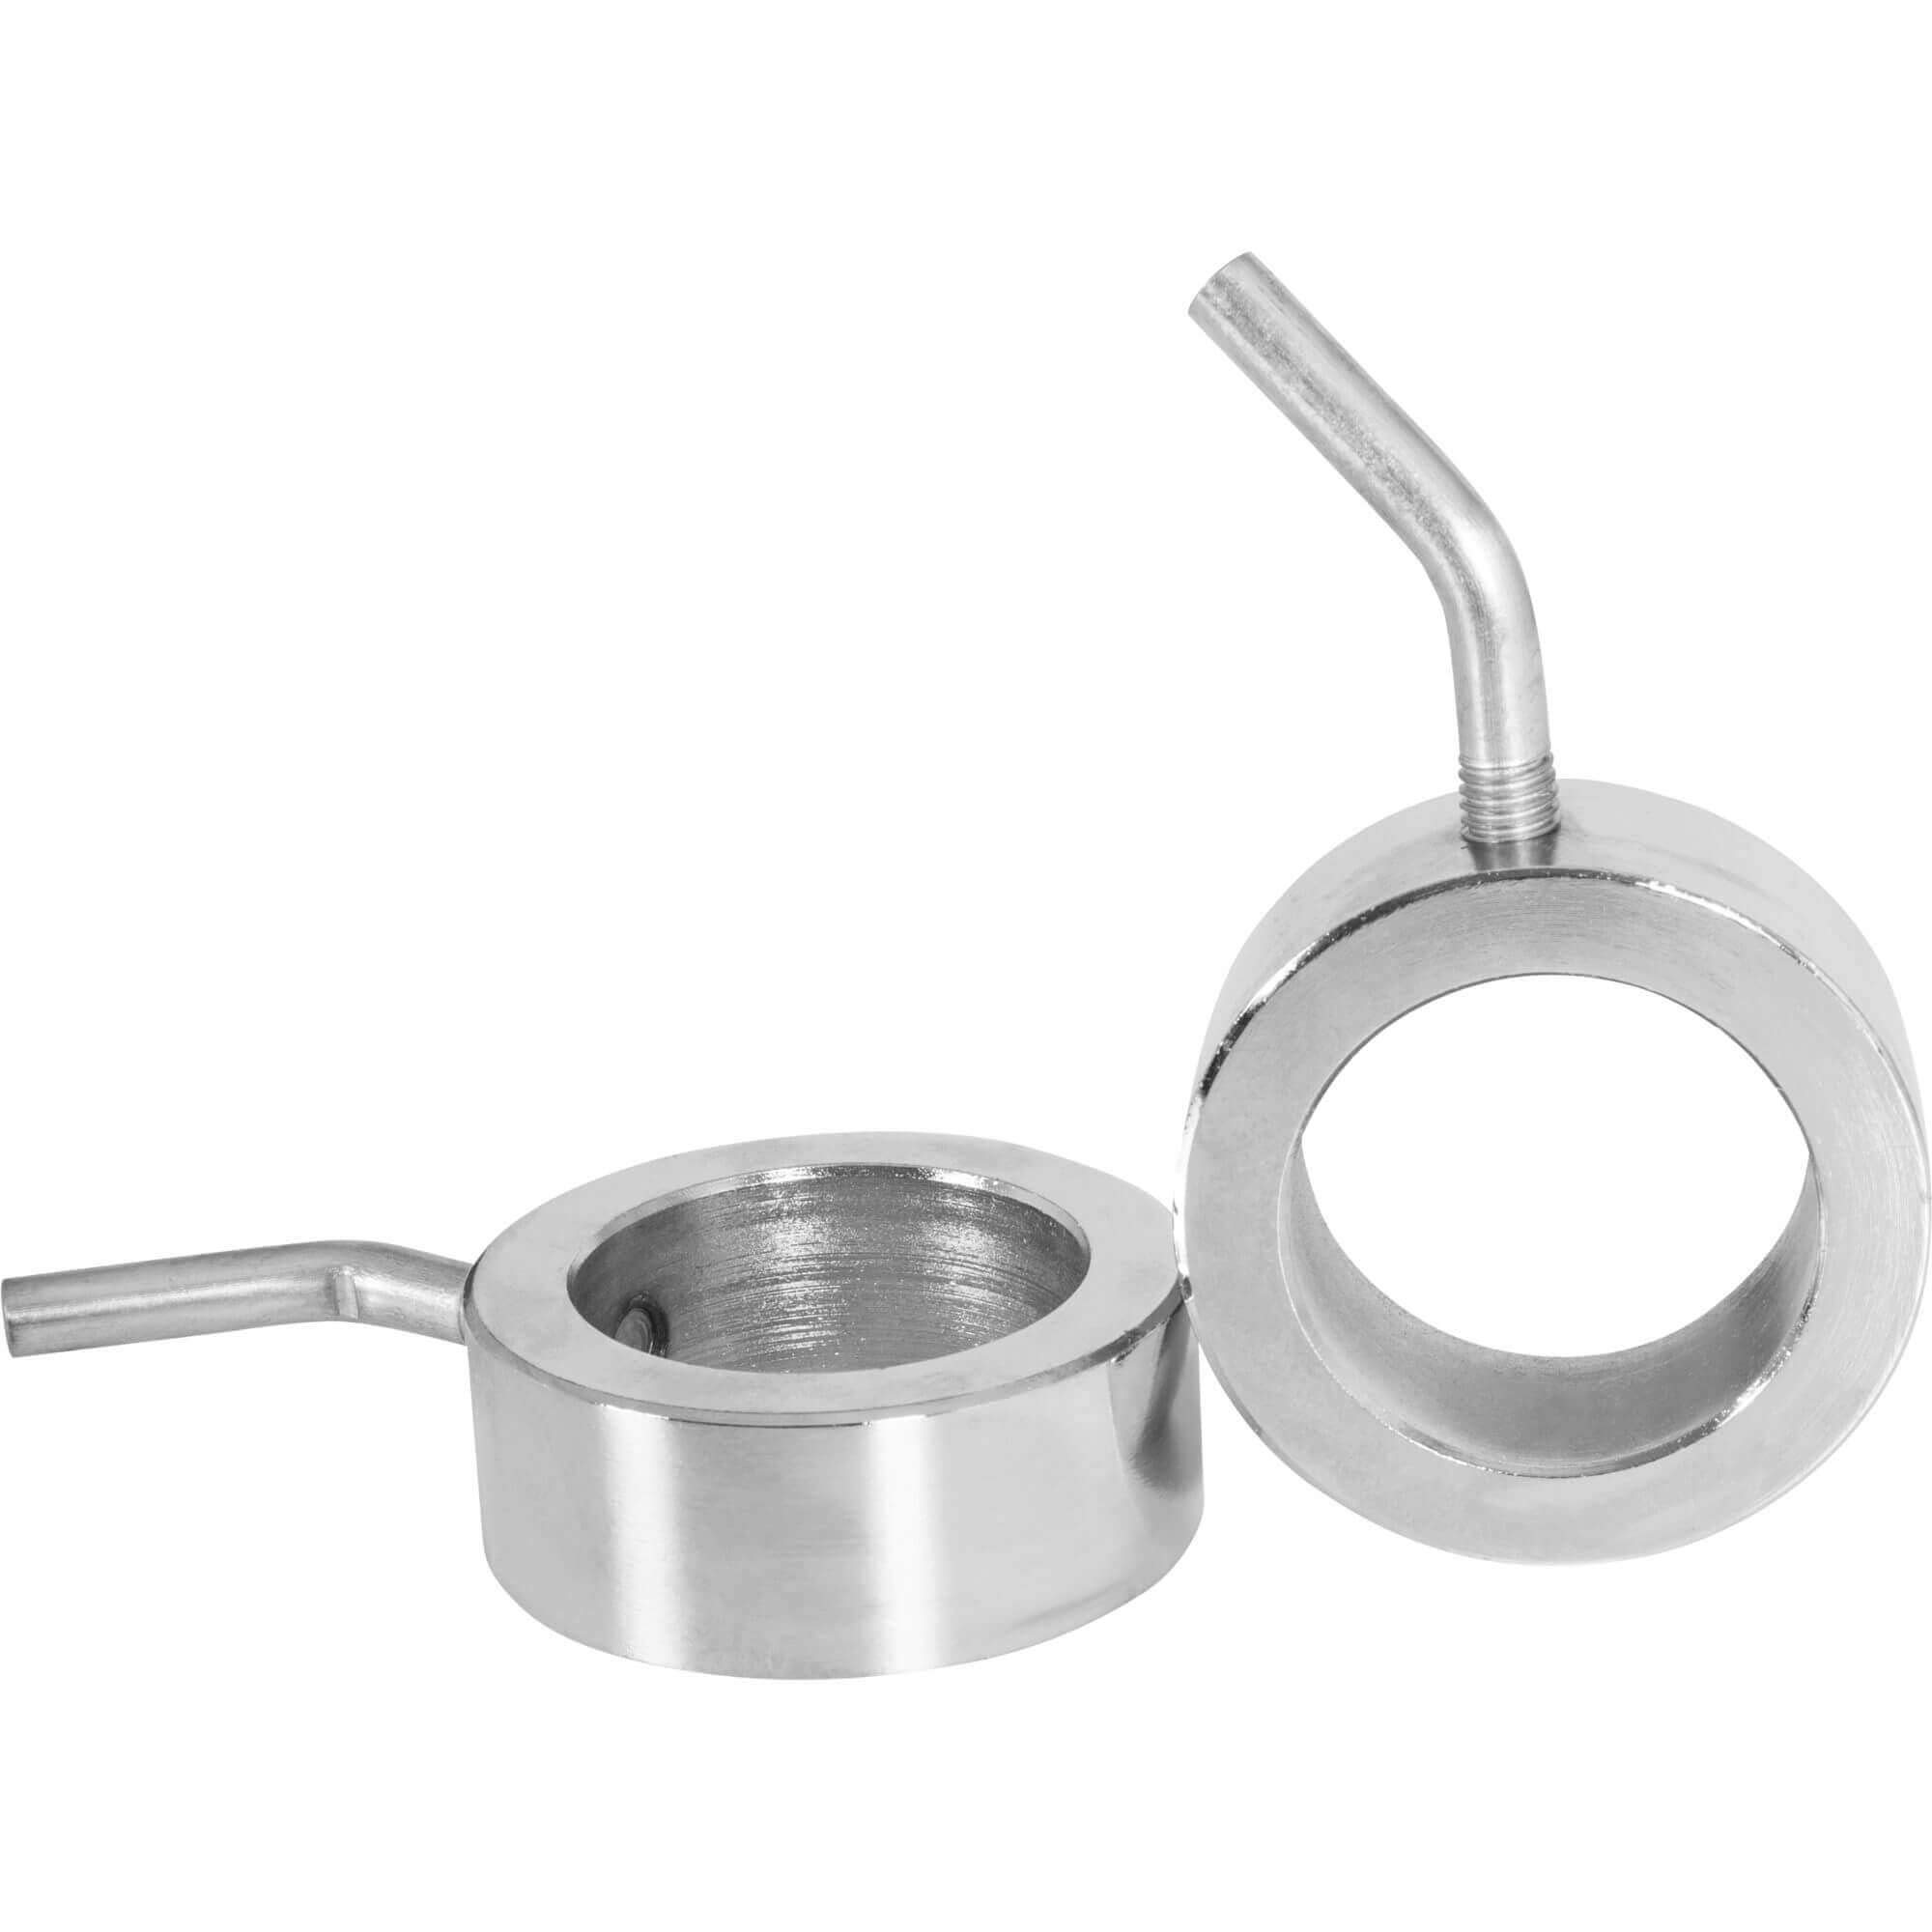 GORILLA SPORTS Olympic barbell collars set chromed - Screw clamps Pair with 2 inch diameter